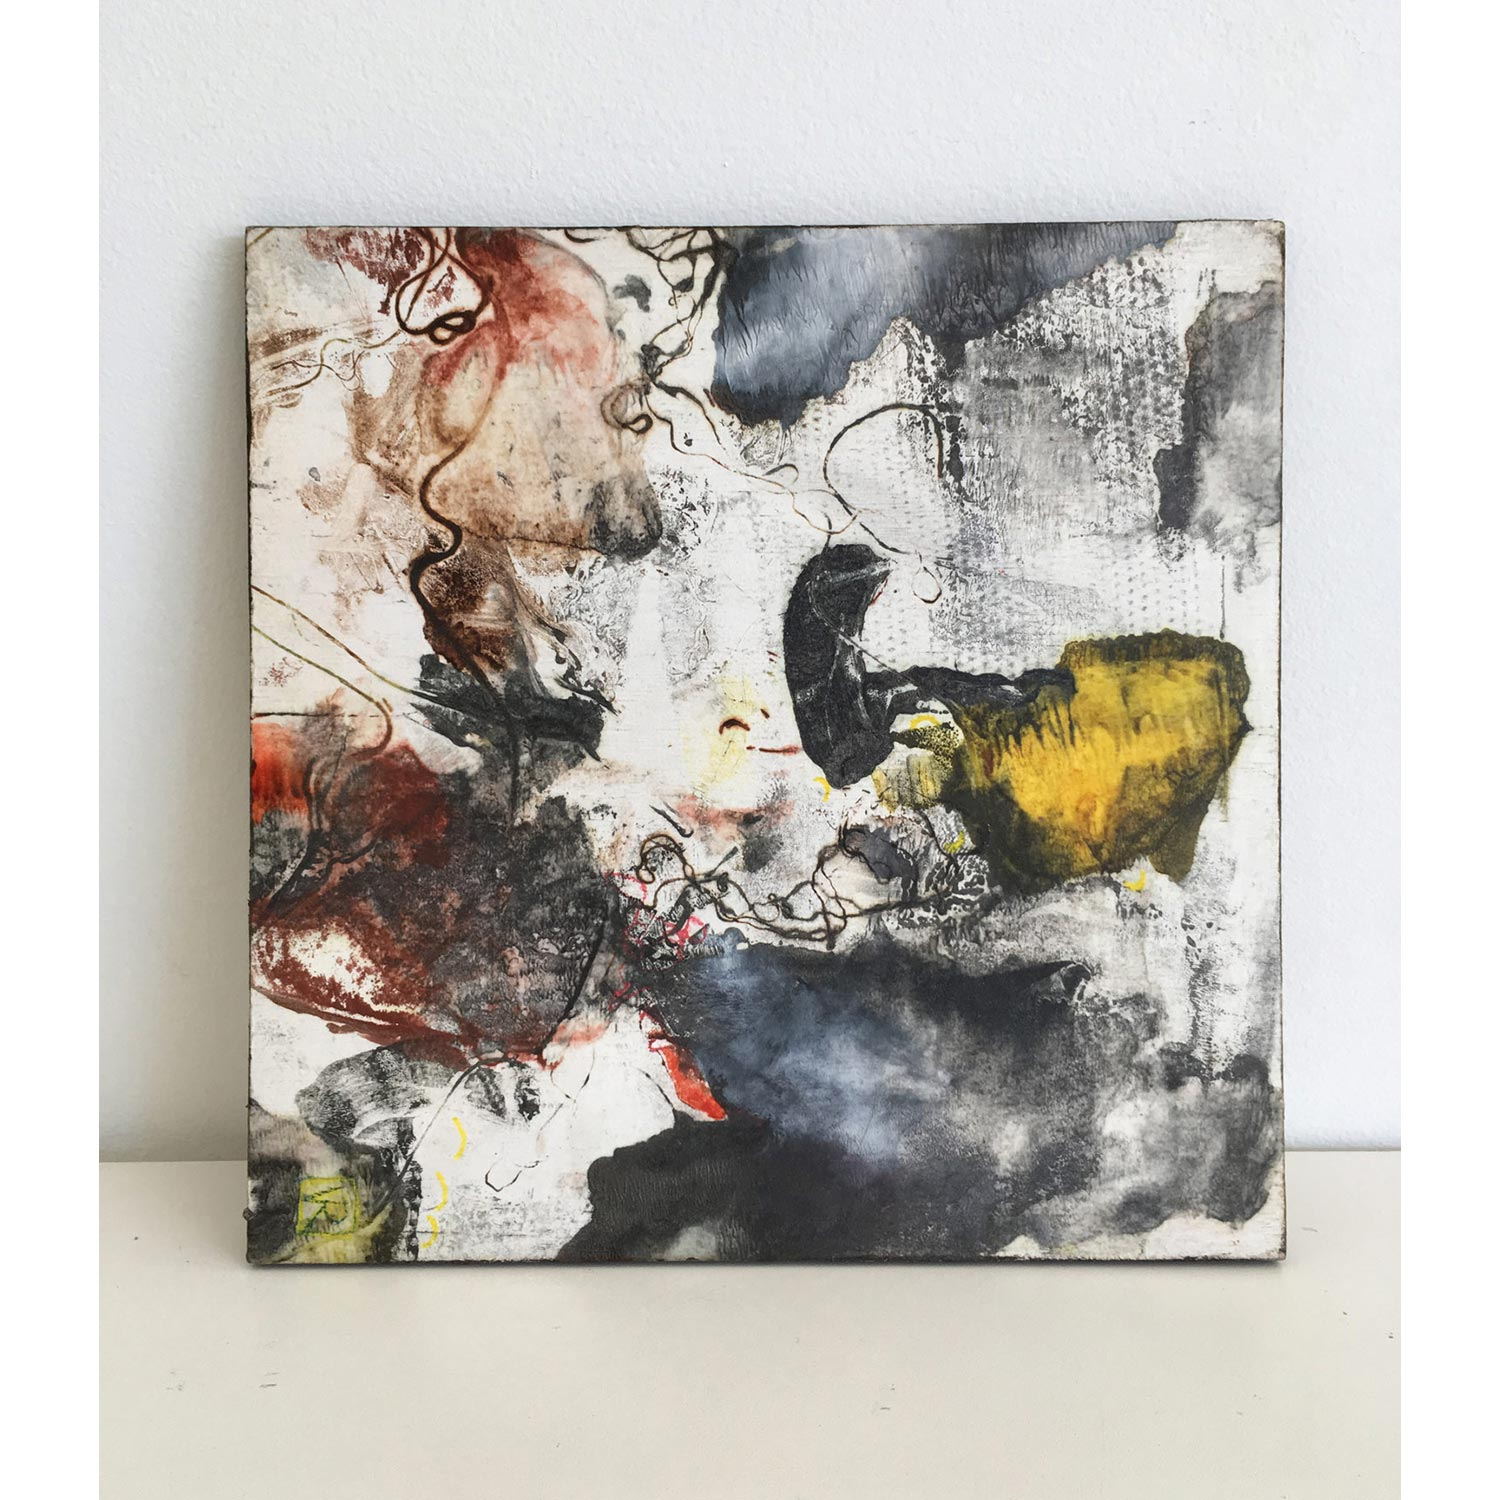 Burrowing III  SOLD Encaustic monotype on Kozo paper, mounted on cradled panel, 30 x 30cm   Enquire